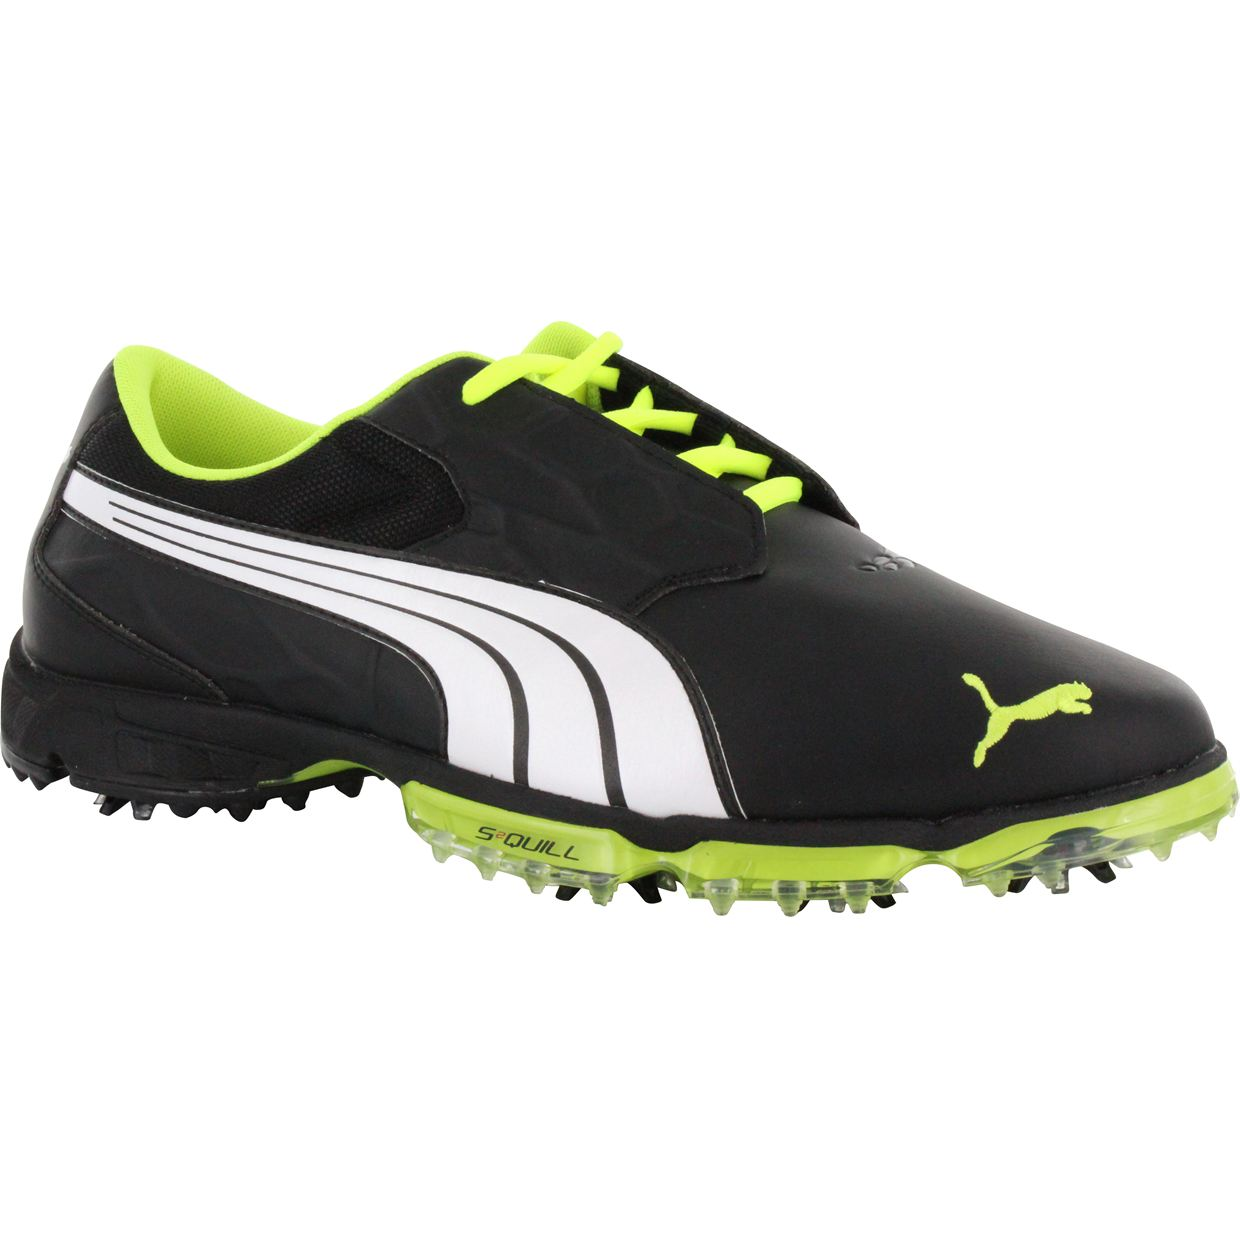 Puma Golf Shoes Closeout